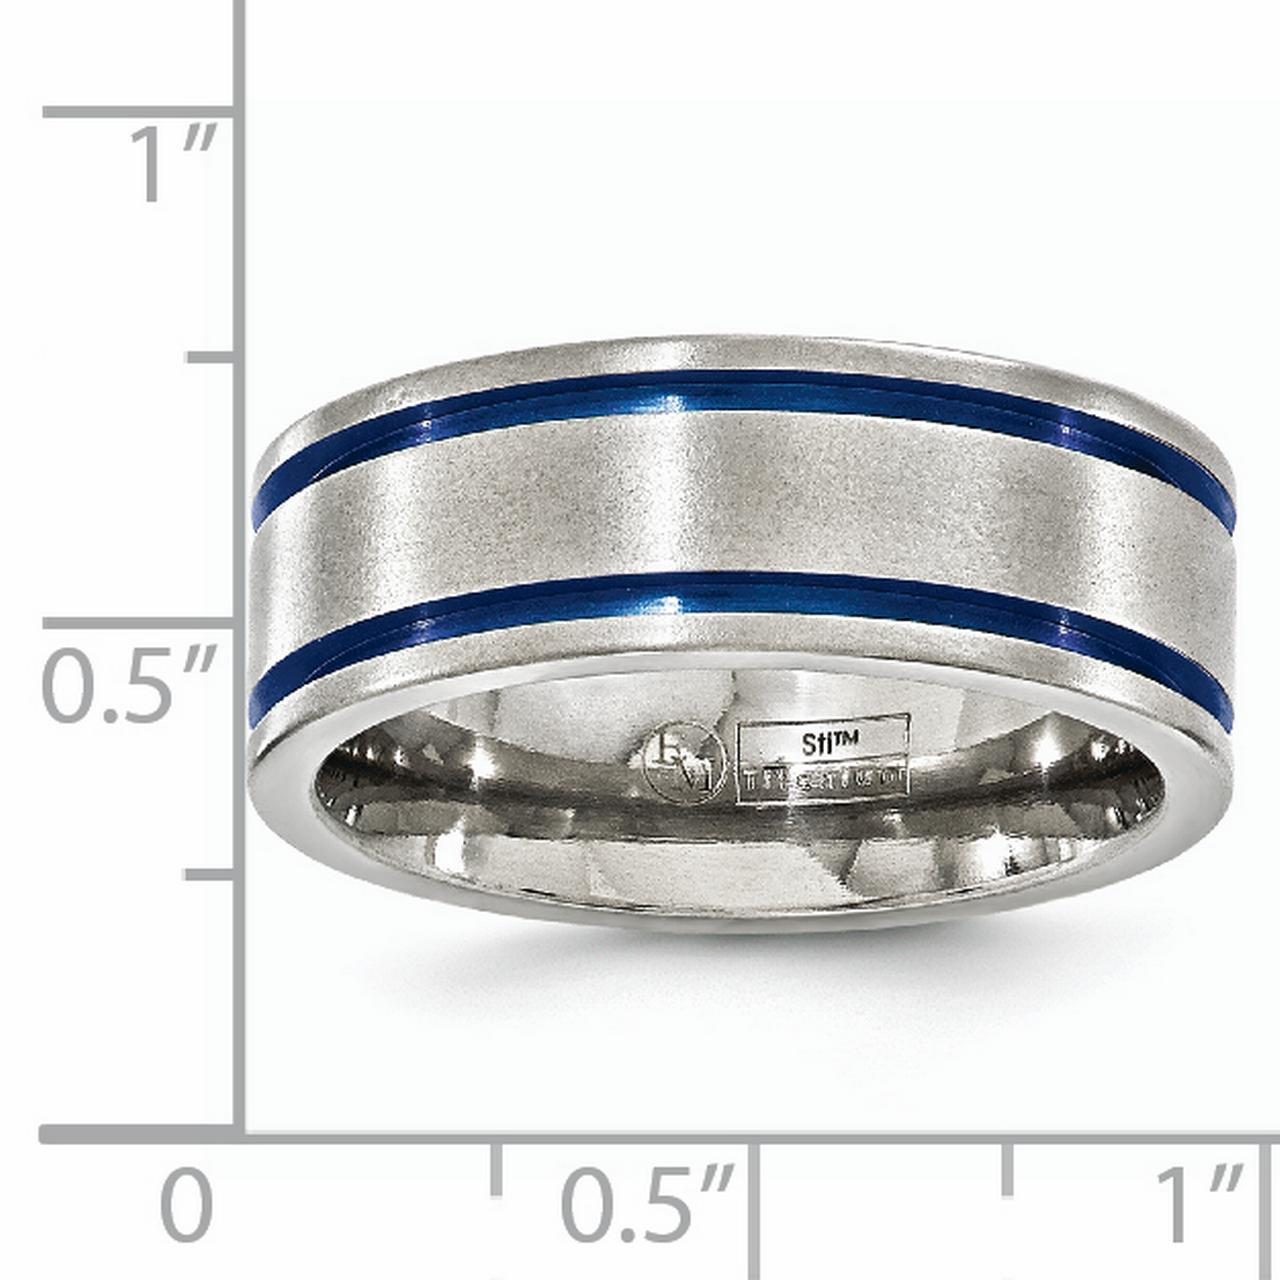 Edward Mirell Titanium Brushed Double Groove Blue Anodized 8mm Wedding Ring Band Size 10.50 Man Classic Flat Fashion Jewelry Gift For Dad Mens For Him - image 5 de 6